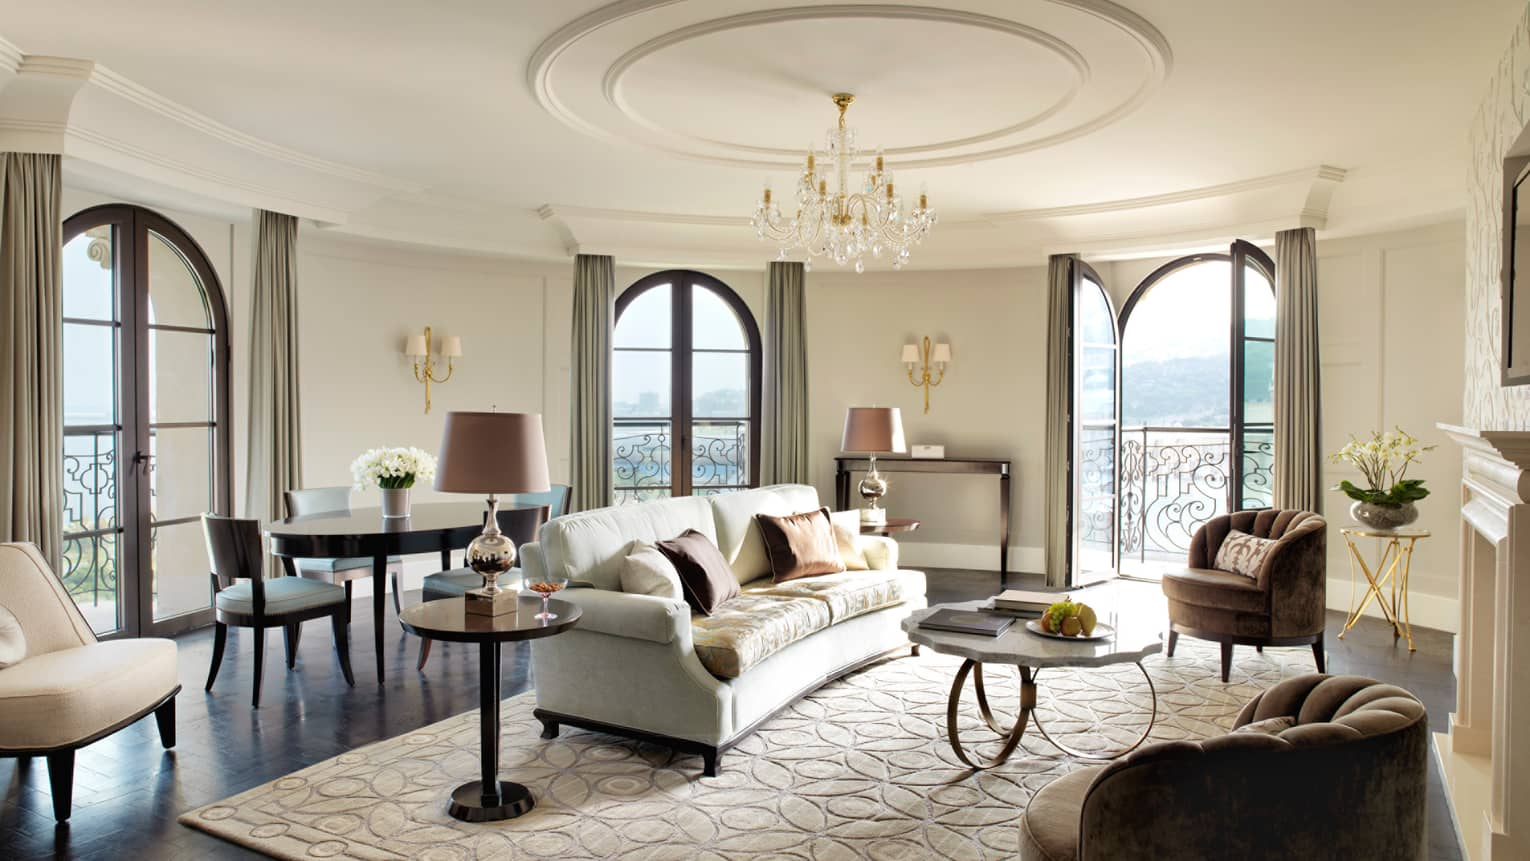 Two-Bedroom Suite circular living room in corner turret, French balcony doors, white sofa and area rug